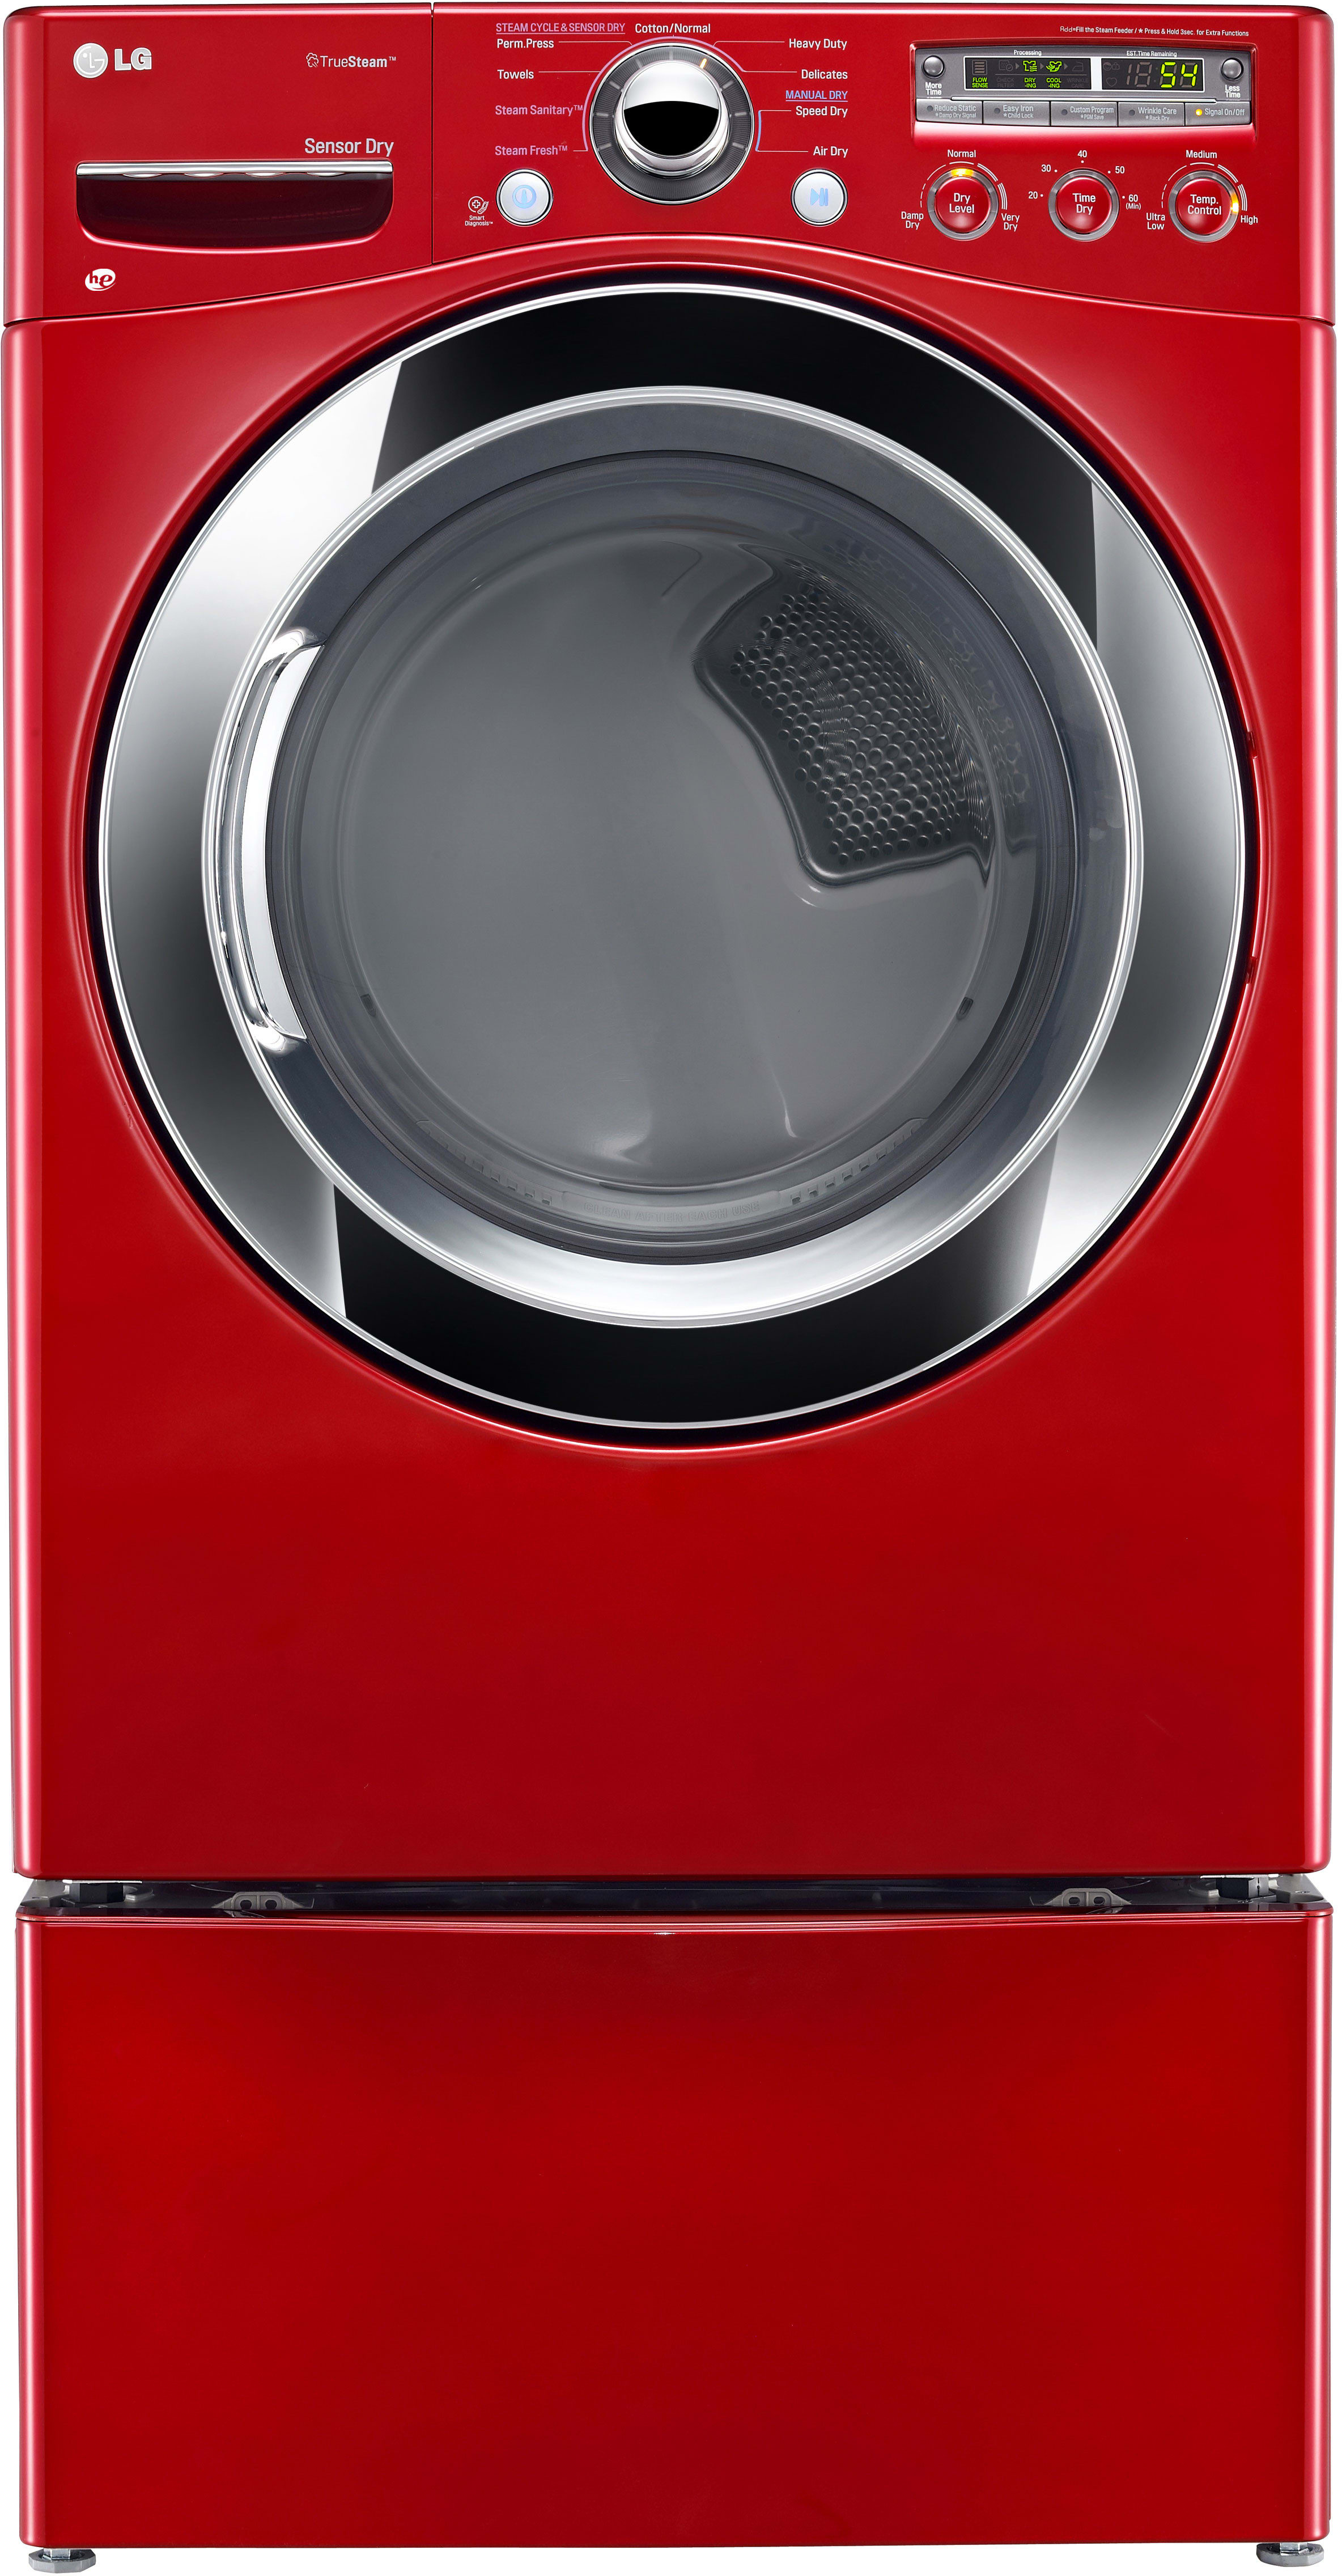 electrolux reviews samsung ratings prices vs bid load front pedestal washers